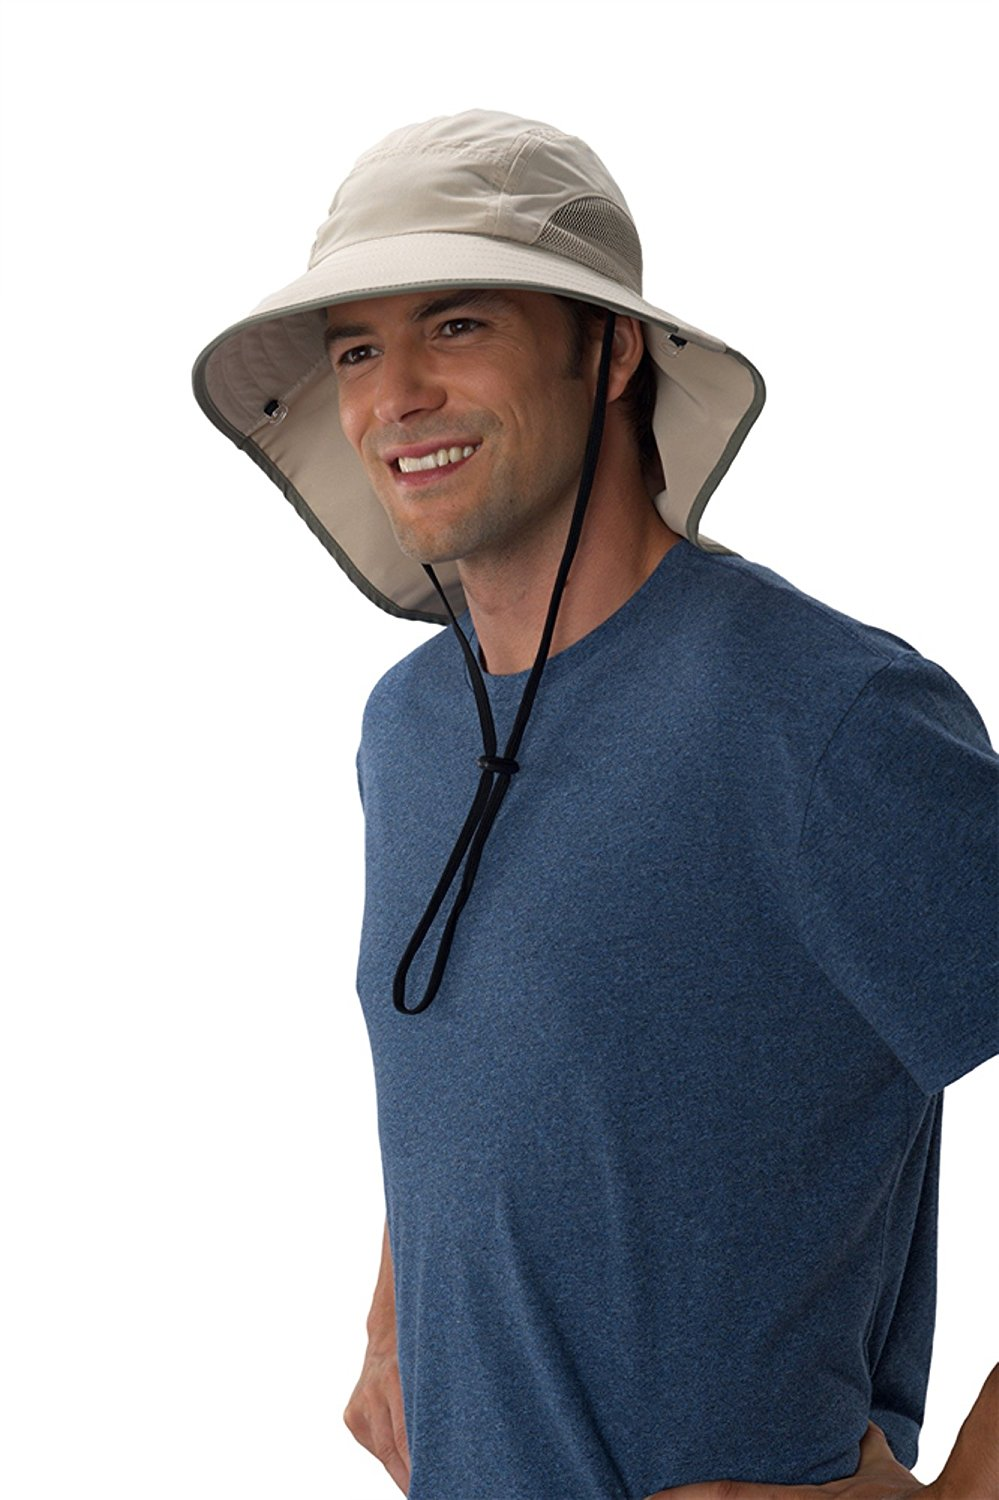 3be8b49daffe3 Get Quotations · Sun Protection Zone Unisex Lightweight Adjustable Outdoor  Floppy Sun Hat (100 SPF